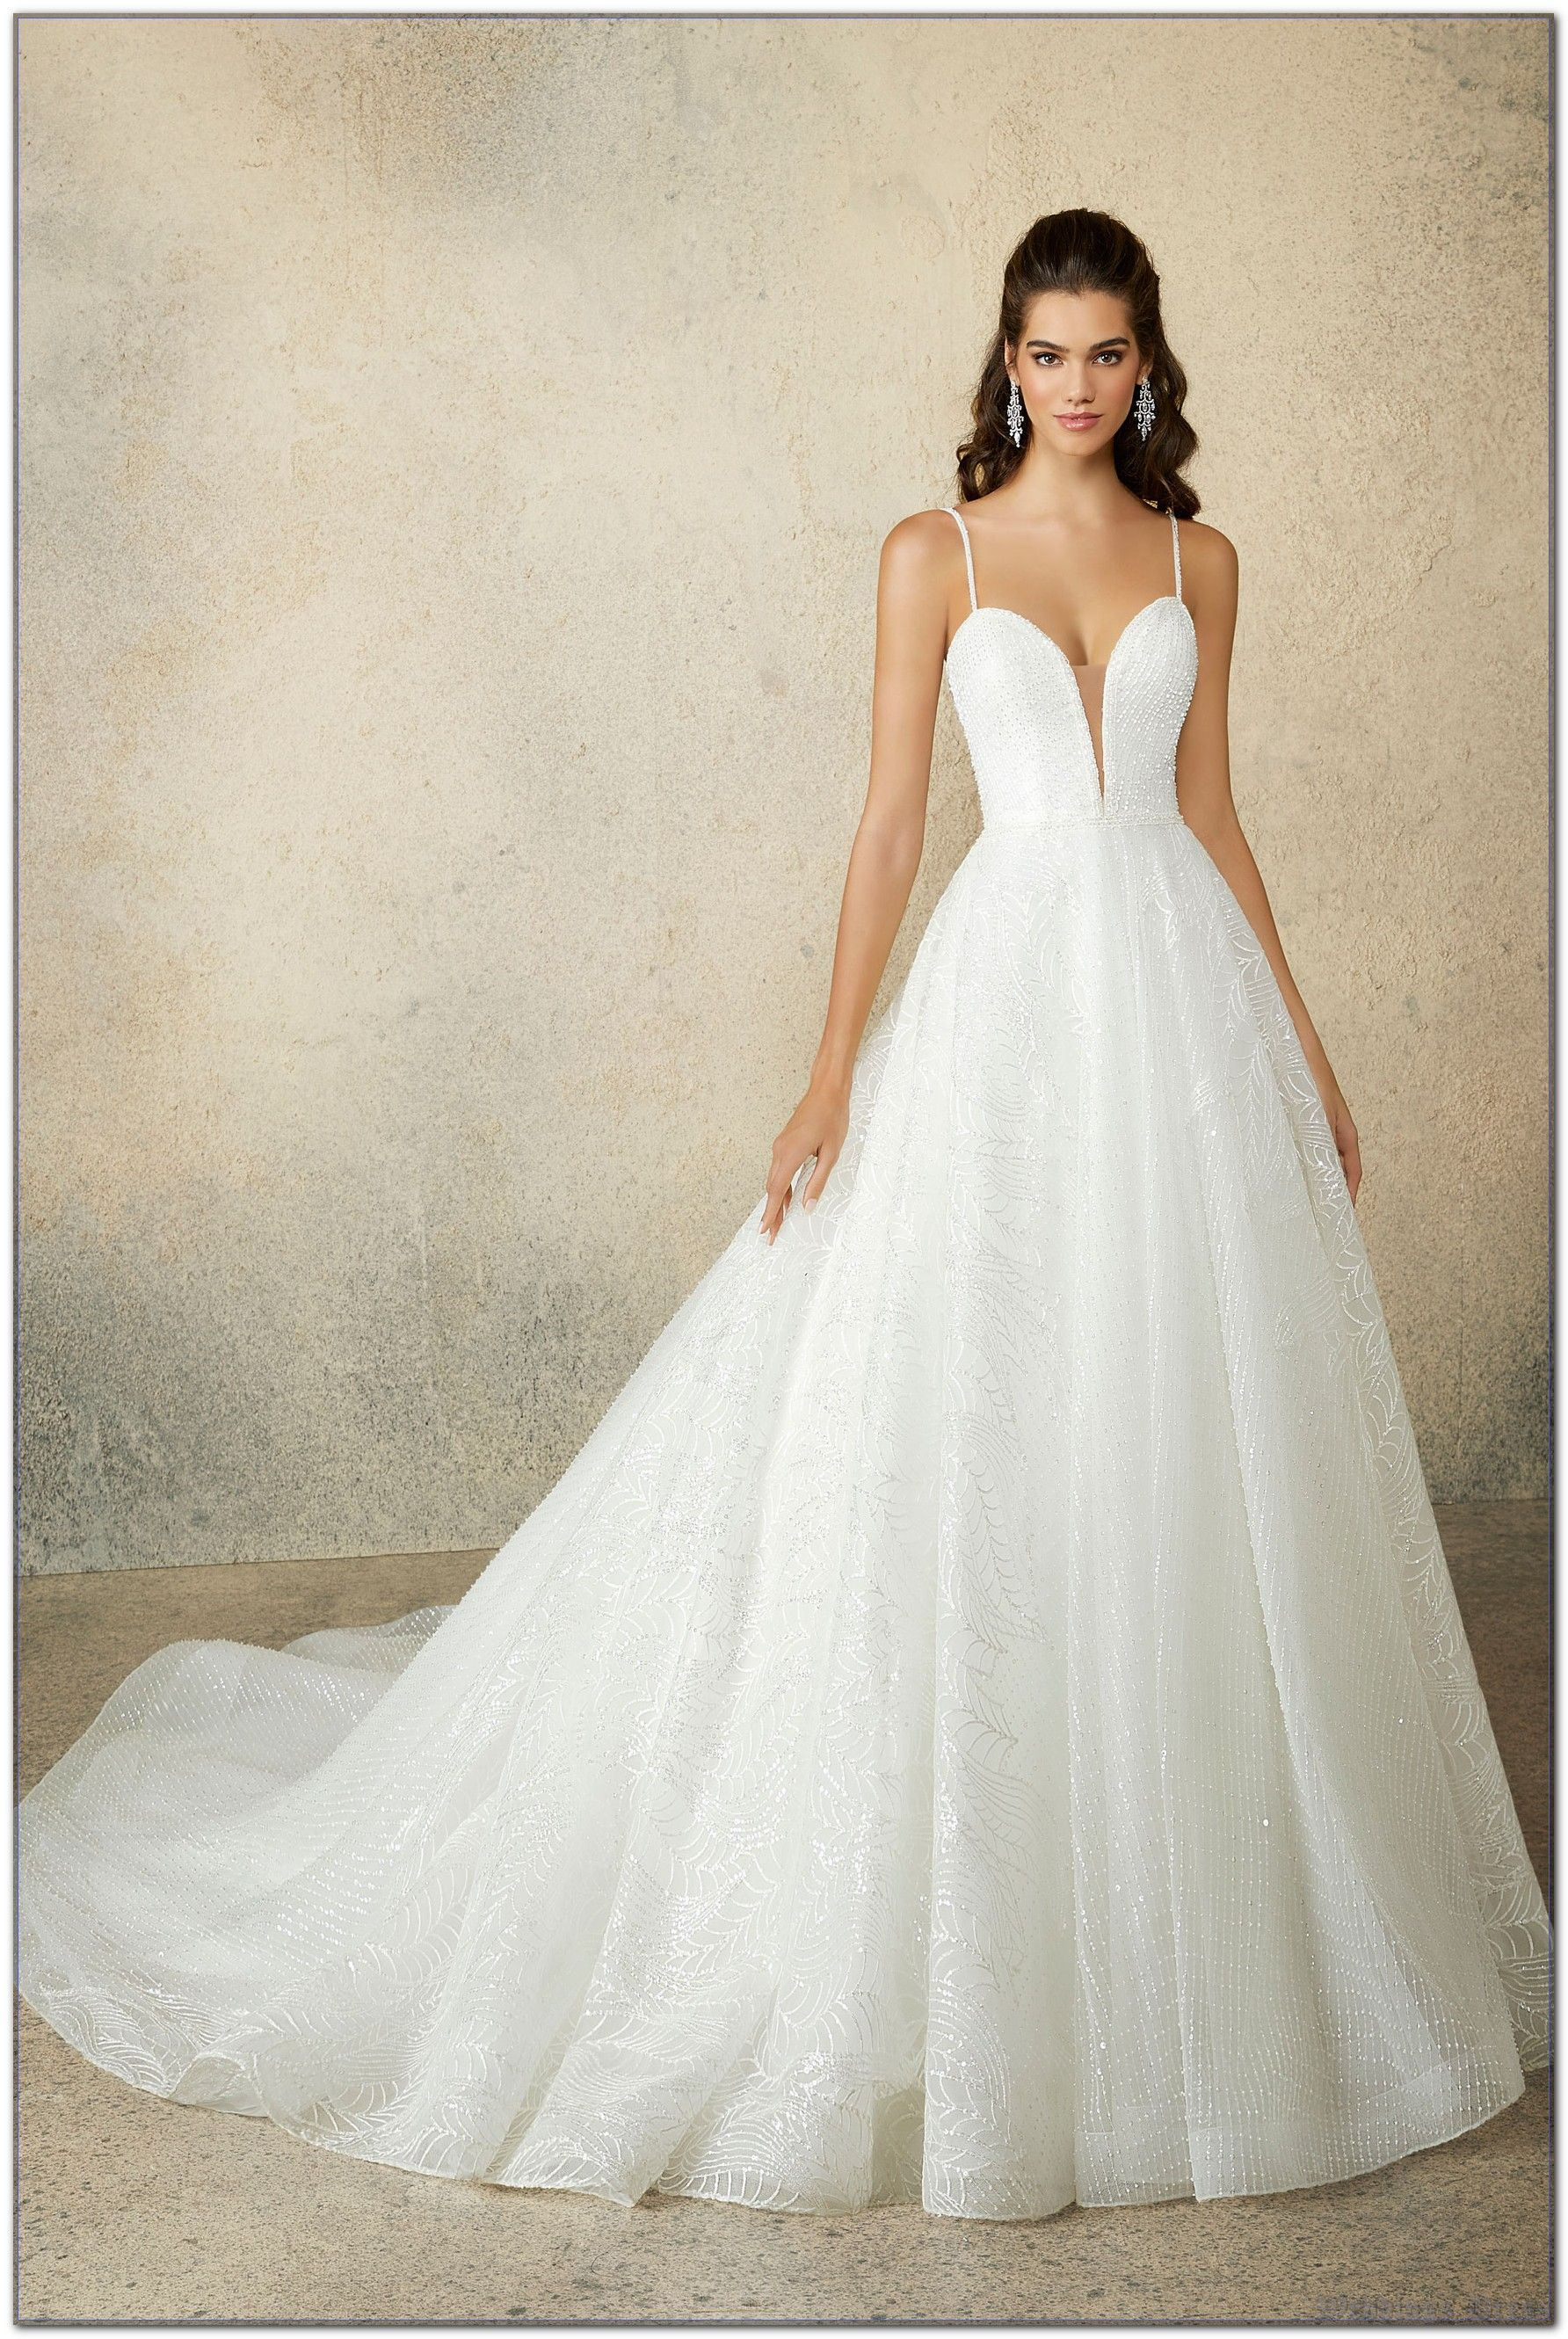 Succeed With Weddings Dress In 24 Hours